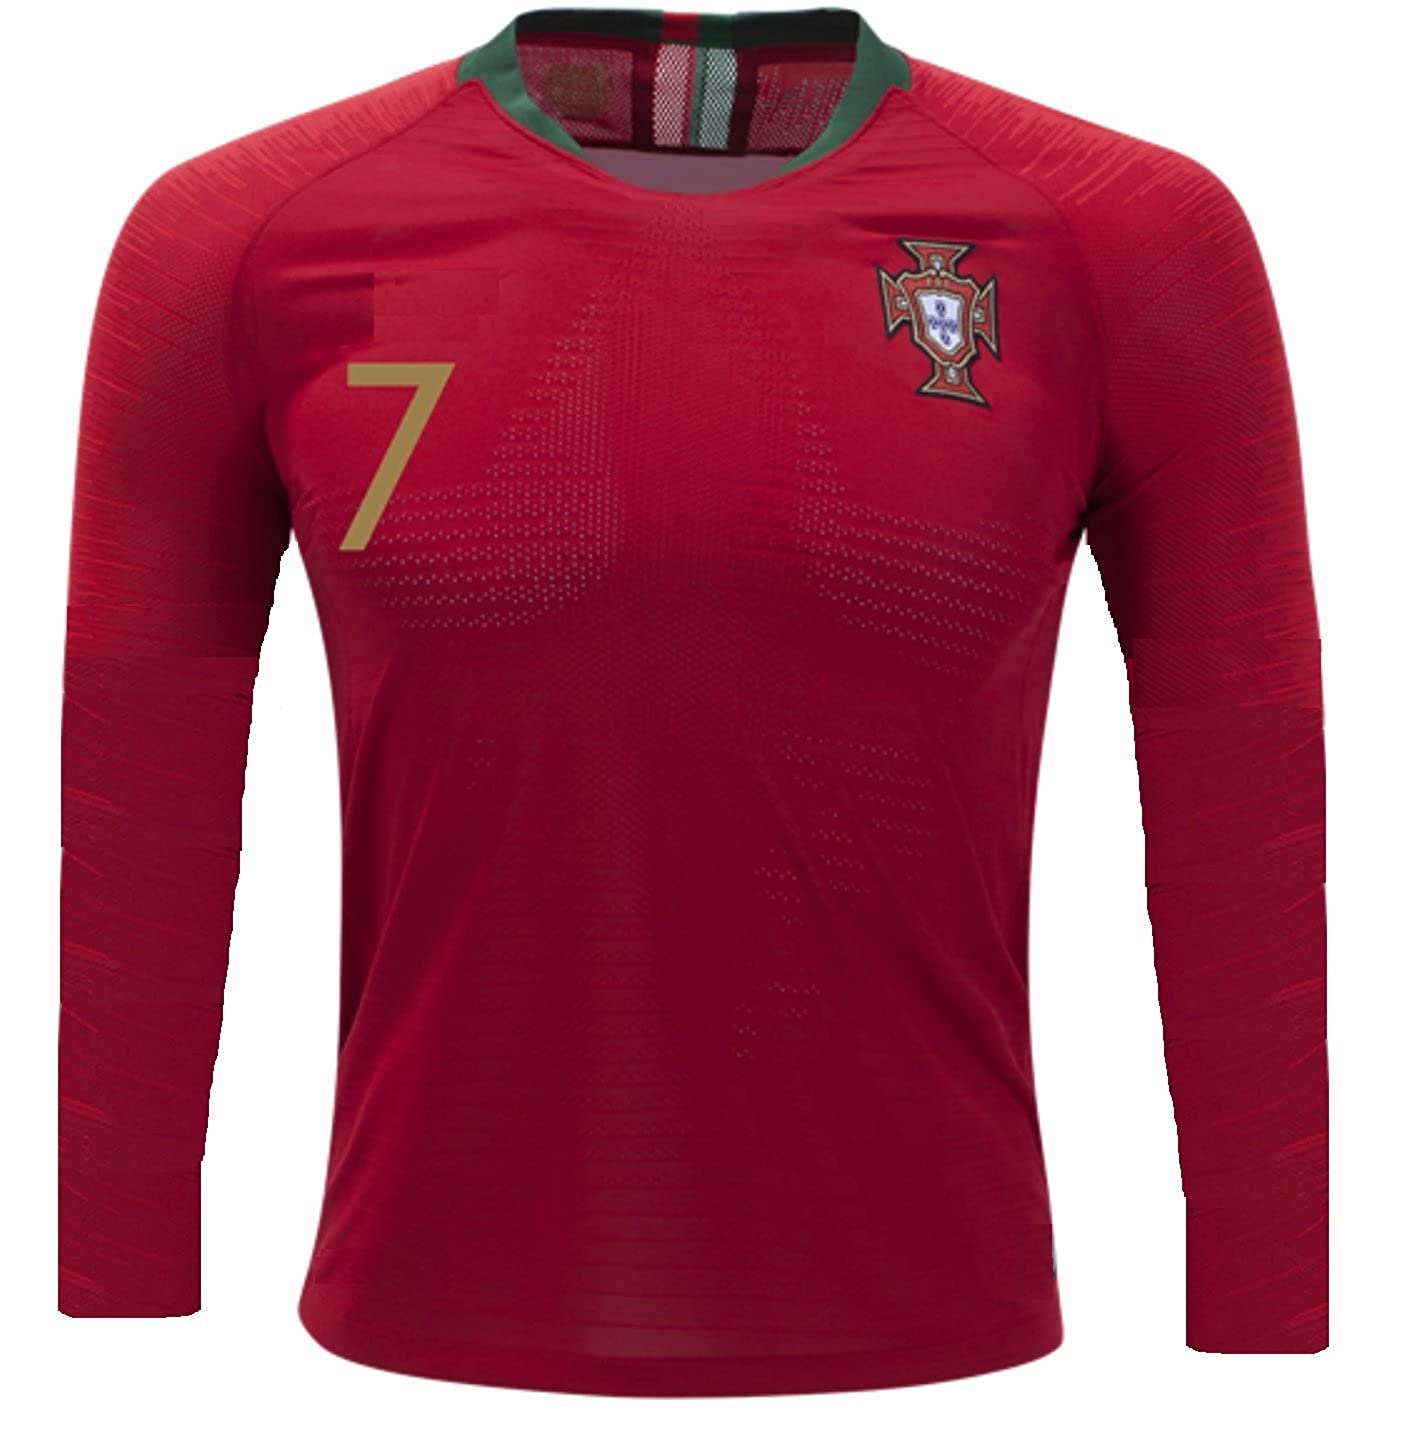 Amazon.com: Portugal Cristiano Ronaldo # 7 - Camiseta y ...